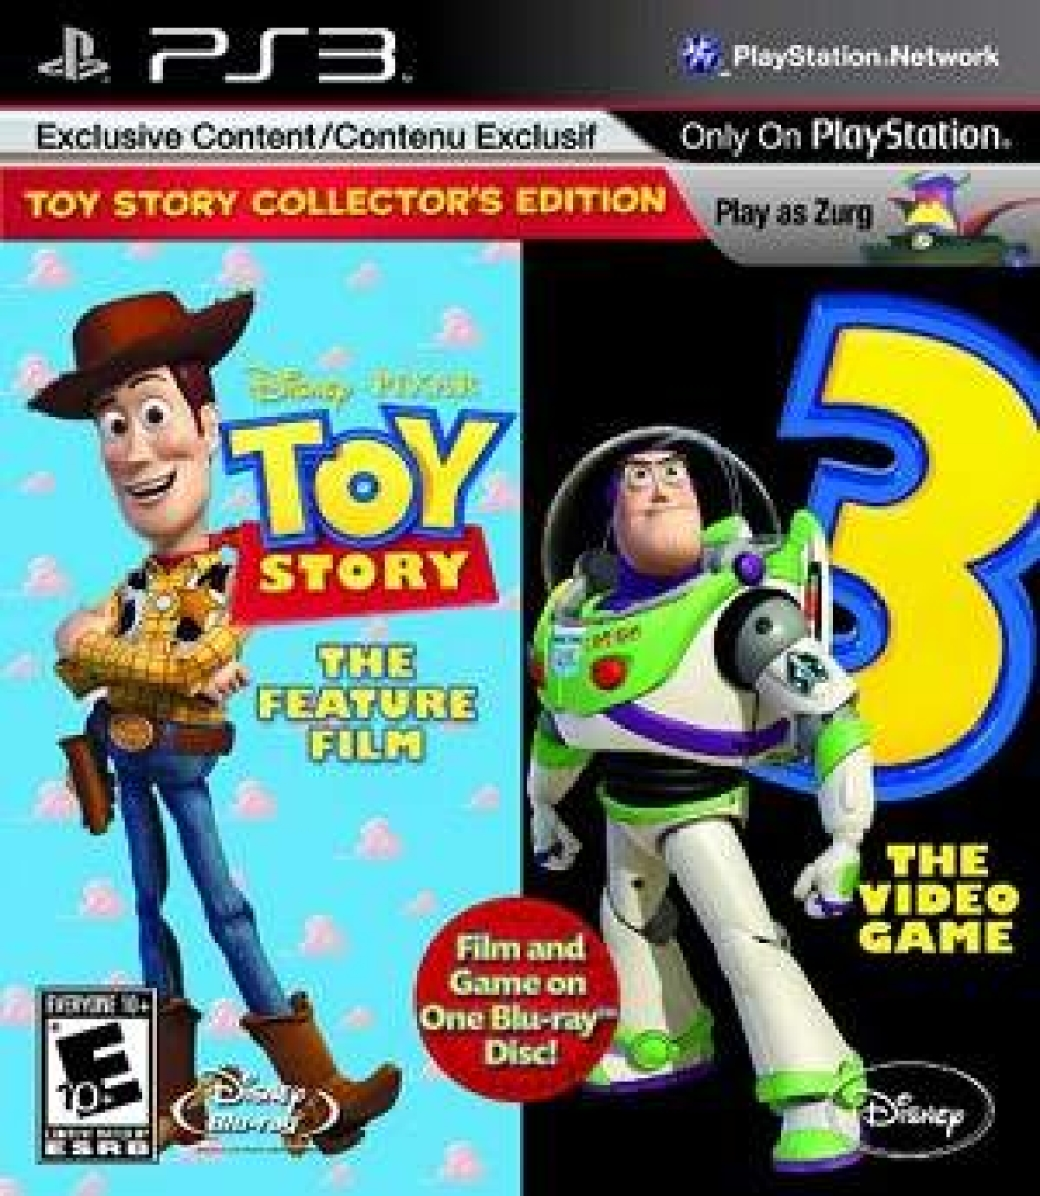 Toy Story 3 Games To Play : Disney puts out ps game and a blu ray movie on one disc